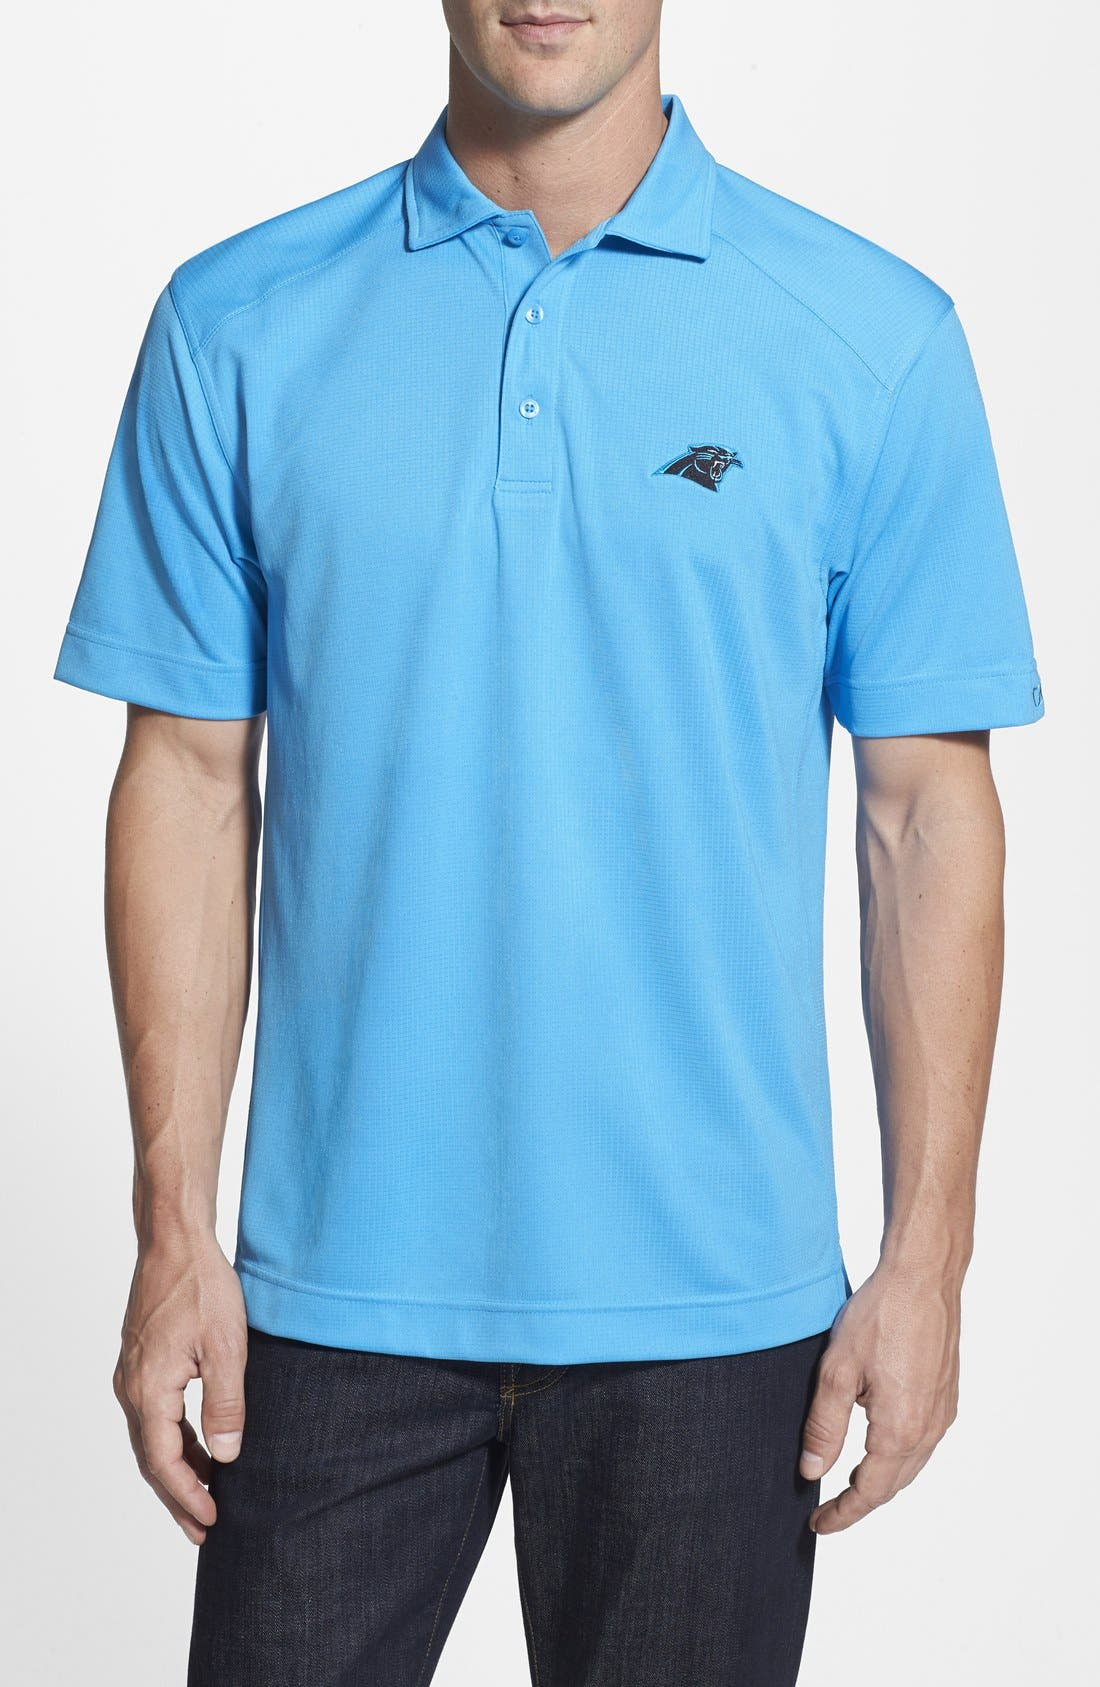 Cutter & Buck 'Carolina Panthers - Genre' DryTec Moisture Wicking Polo (Big & Tall)